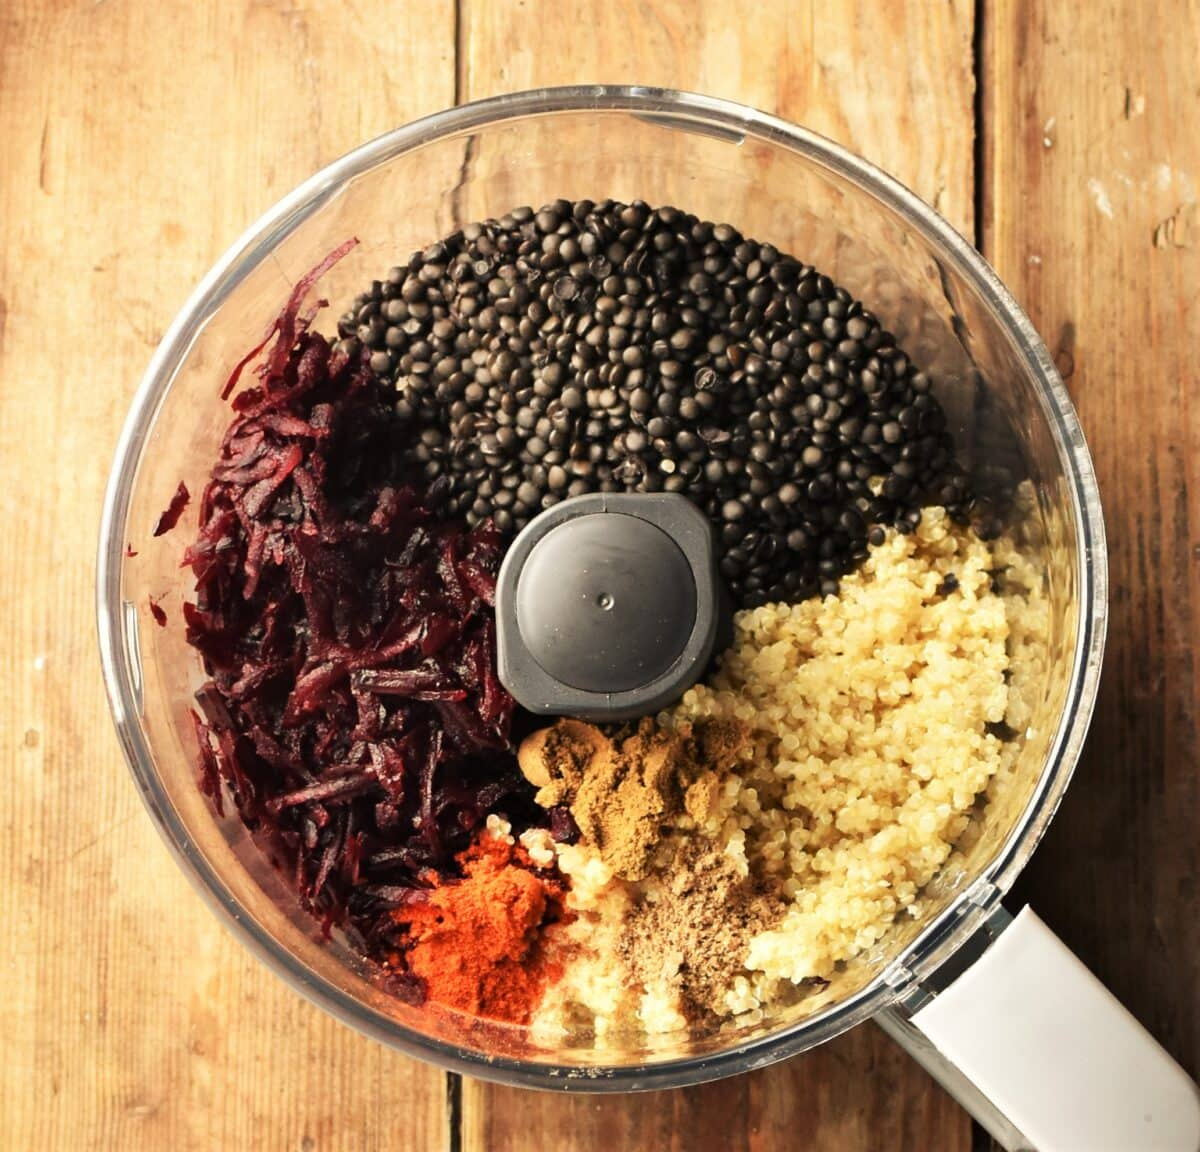 Grated beetroot, quinoa, lentils and spices in blender.